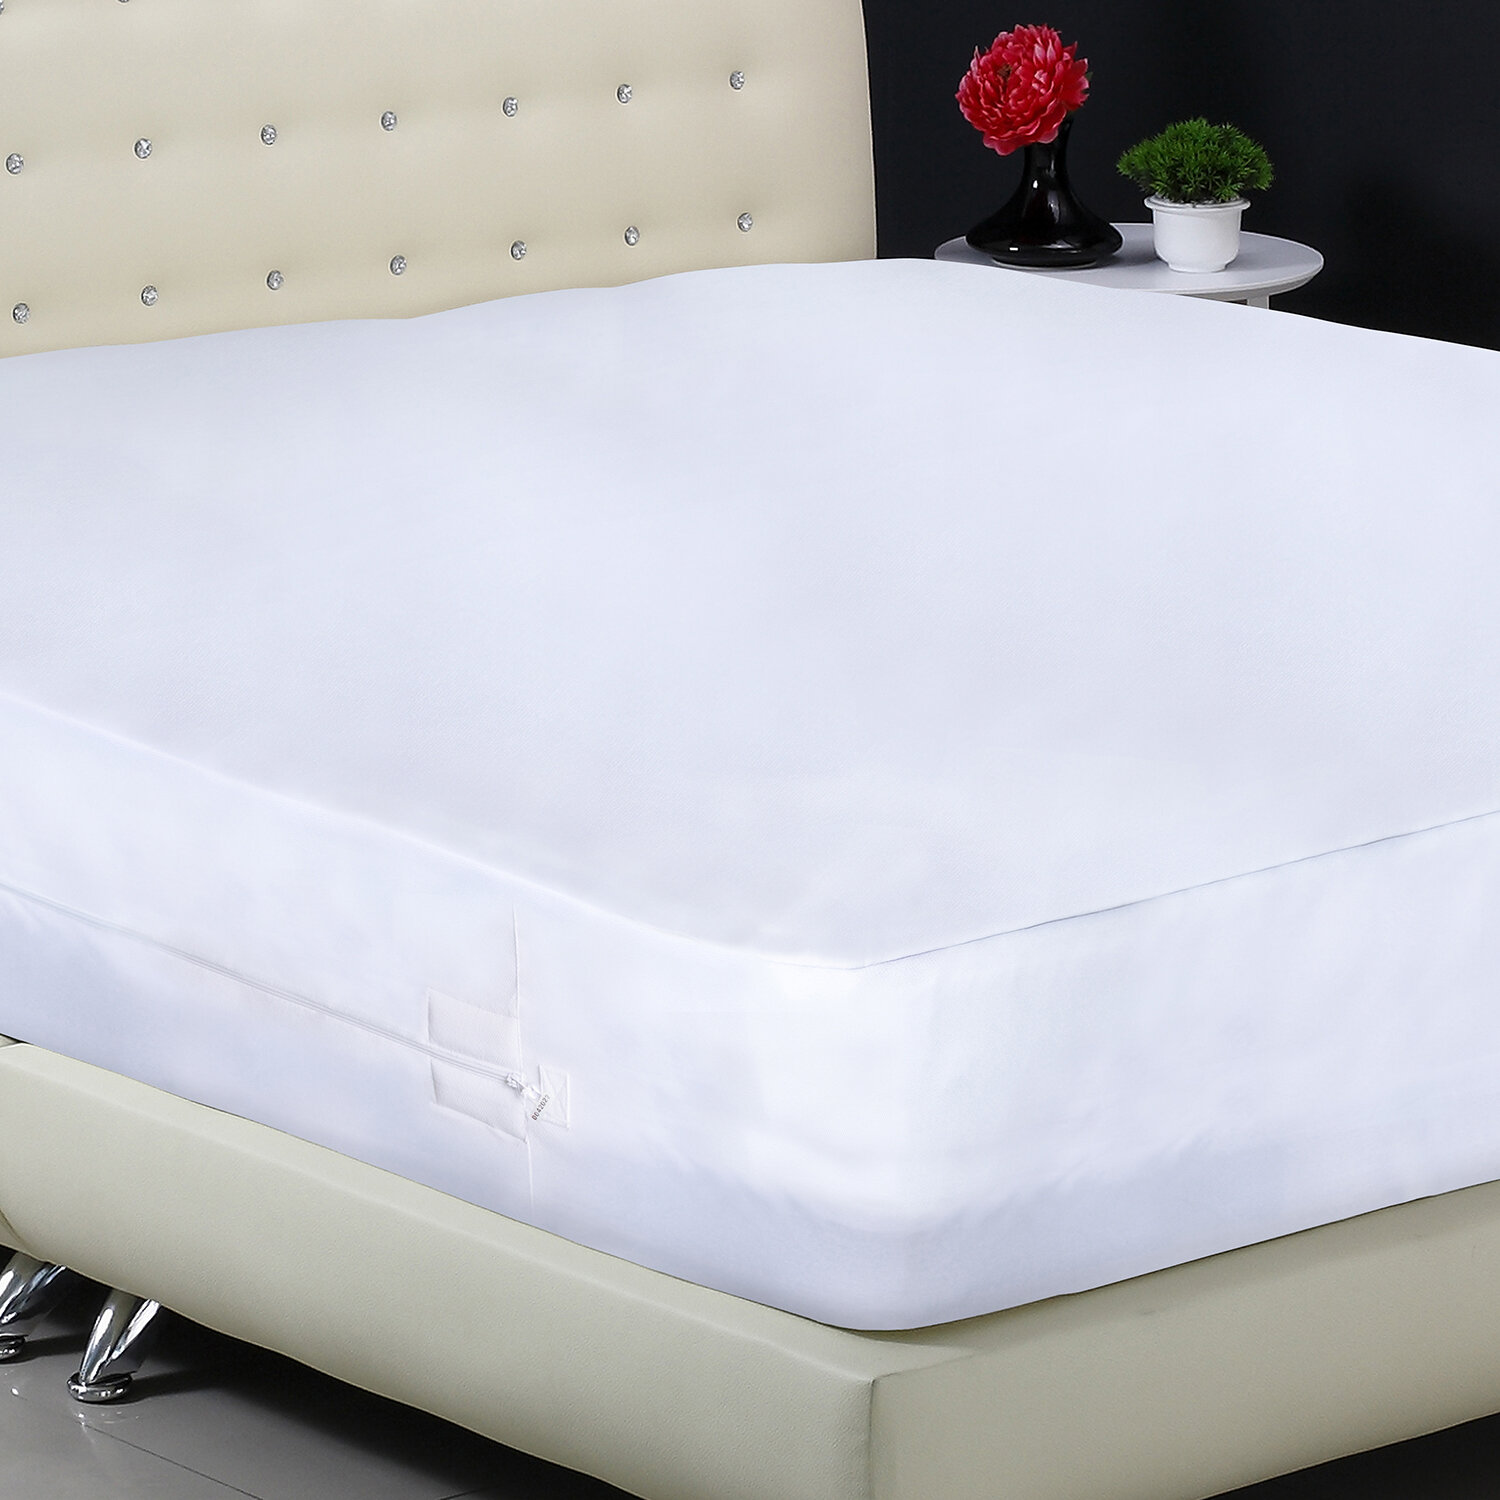 bugs coconut covers bug with for mattress detail chemical fiber topper product free bed